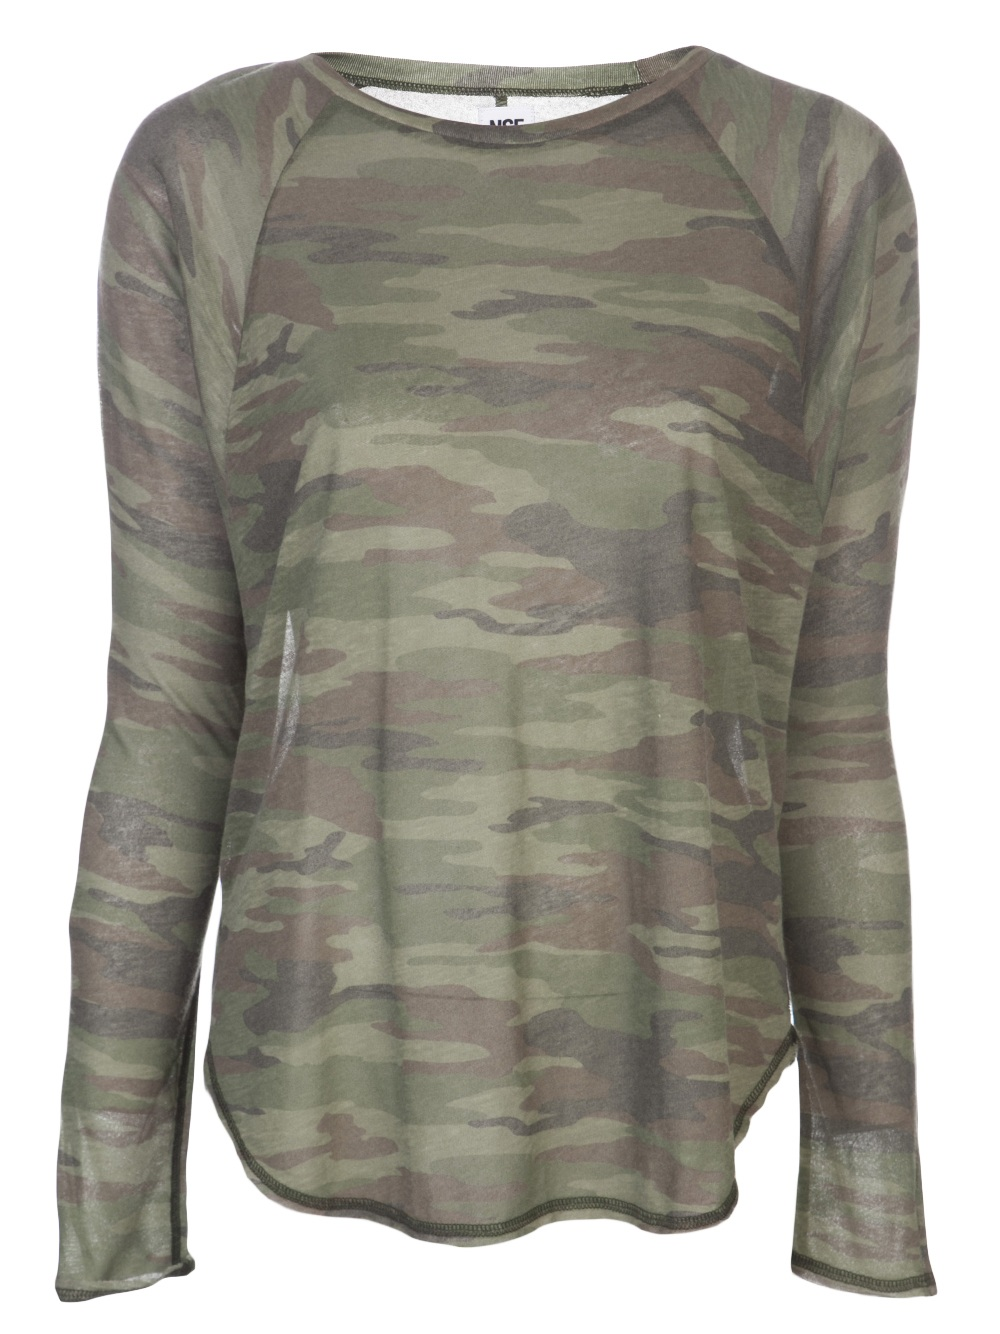 Lyst - Bliss and Mischief Loretta Vintage Camo Tshirt 689df6e84d3